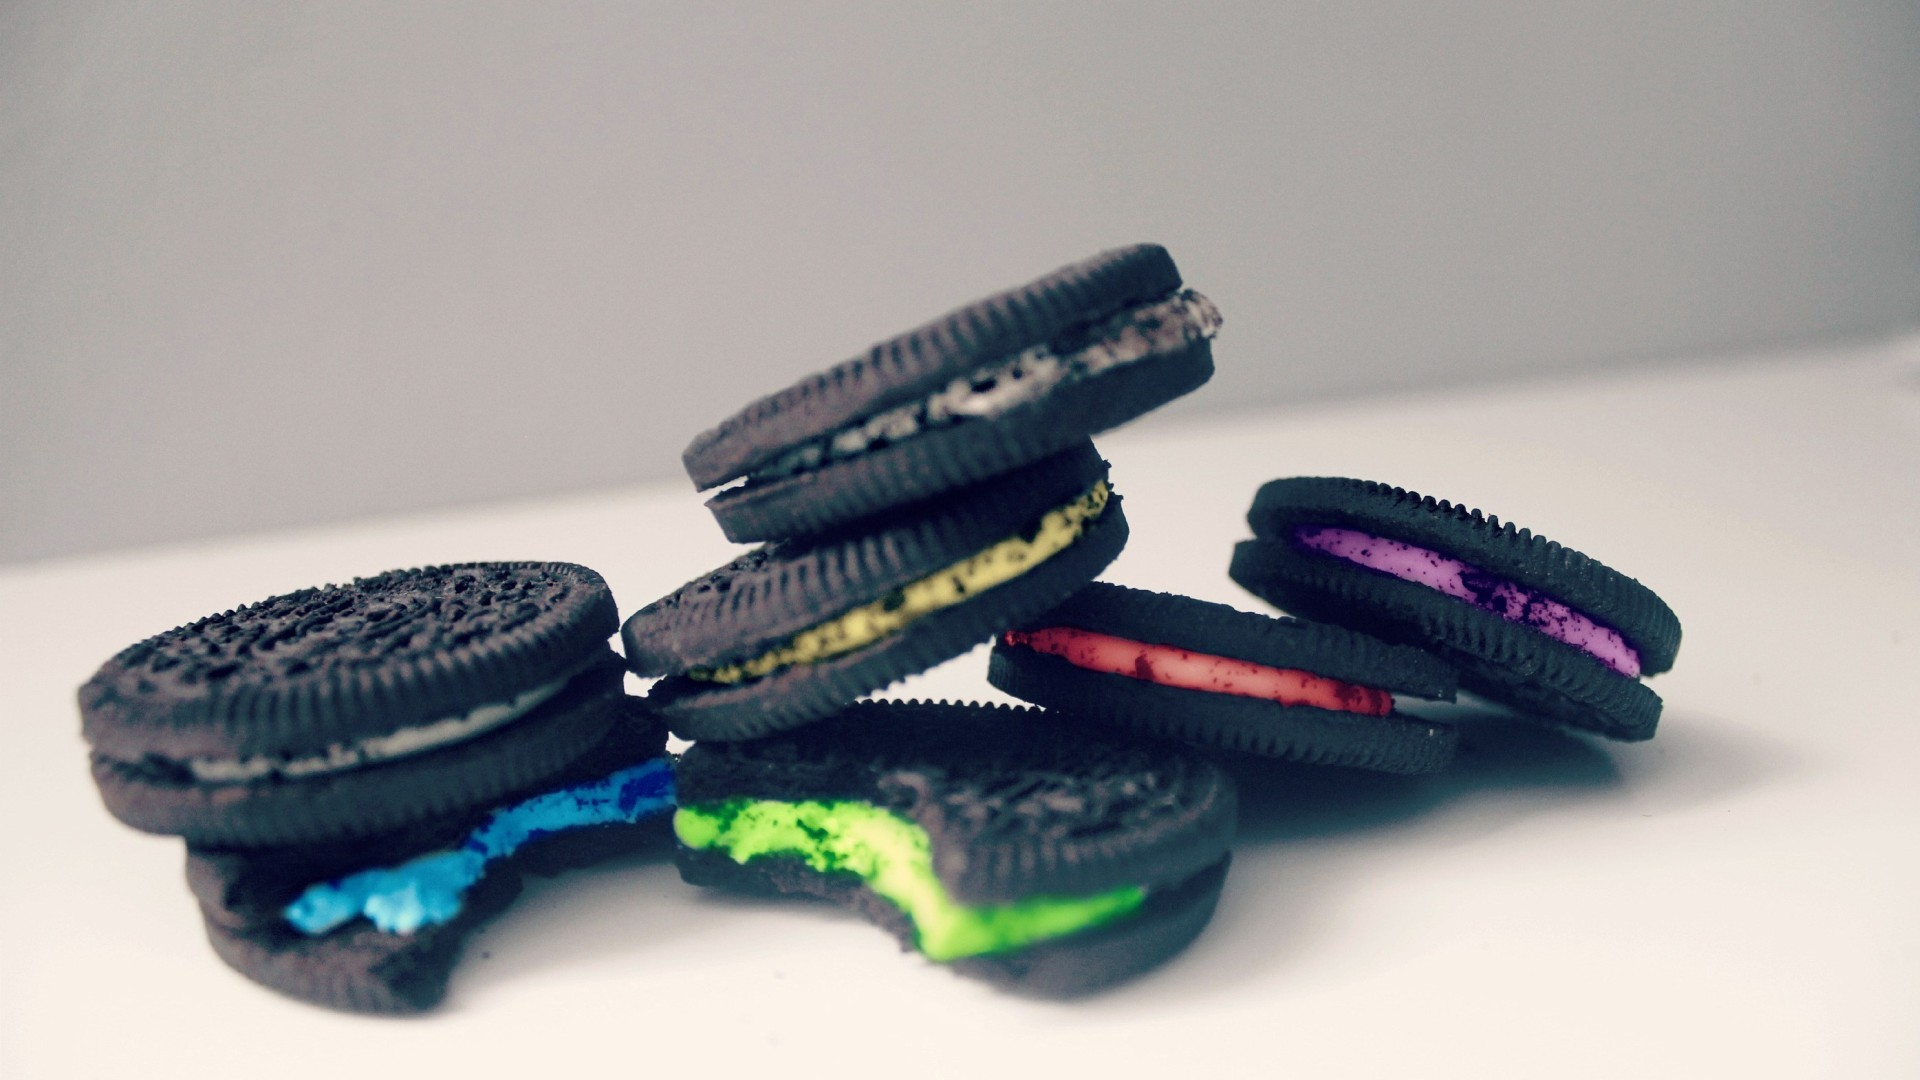 Oreo Colorful Biscuits - Oreo Colorful Biscuits